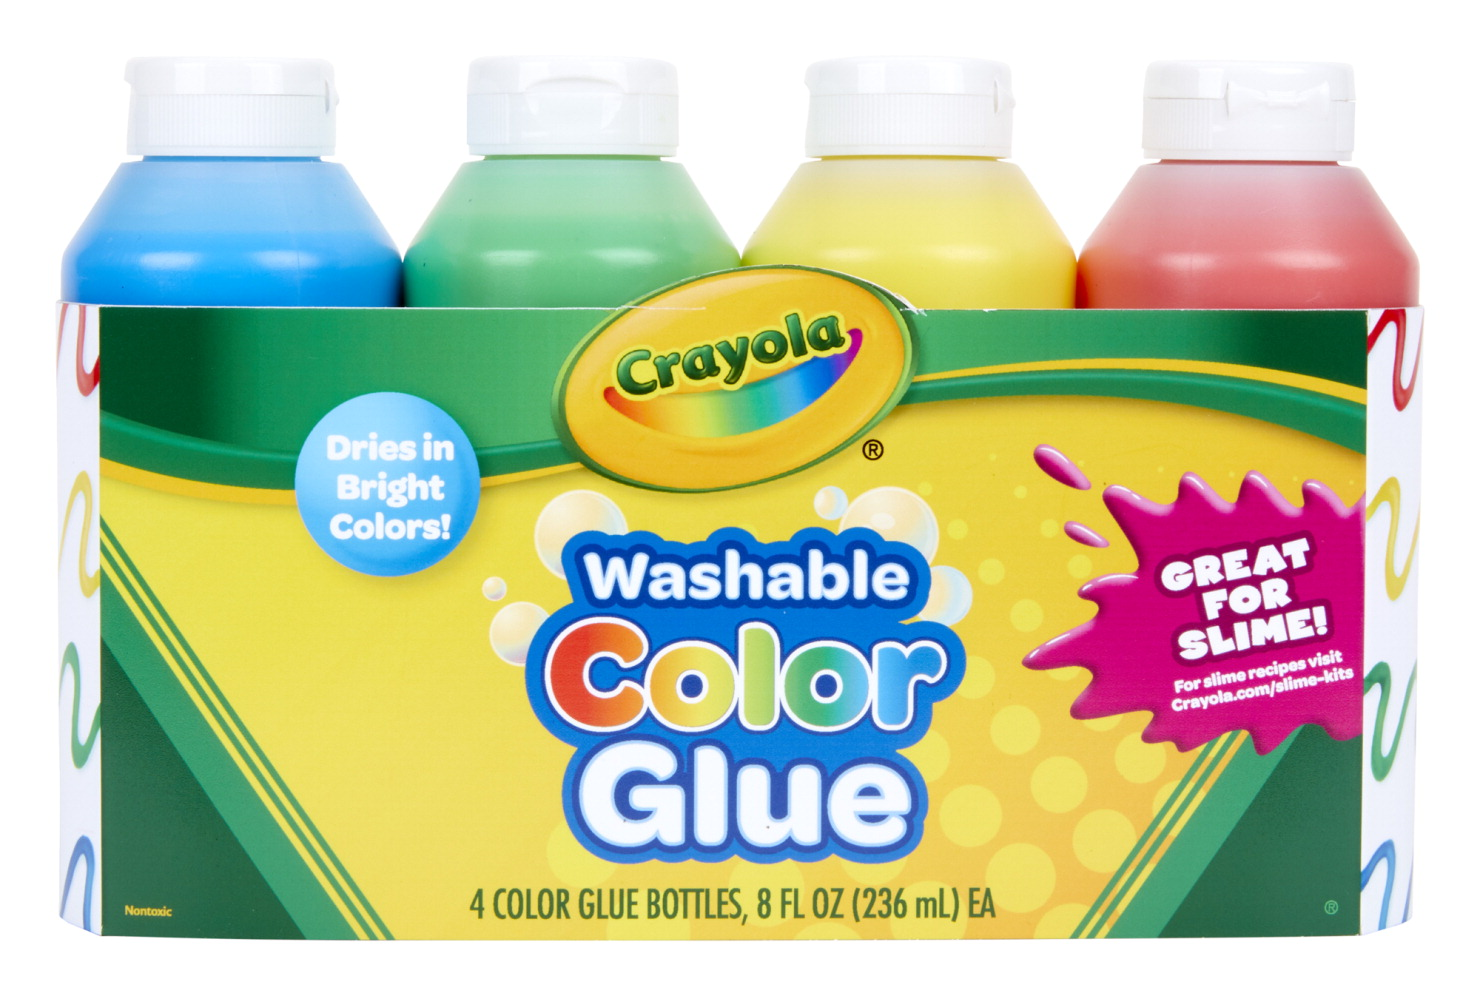 Crayola Washable Colored Glue, Assorted Colors, 8 Ounce Bottles, Pack of 4